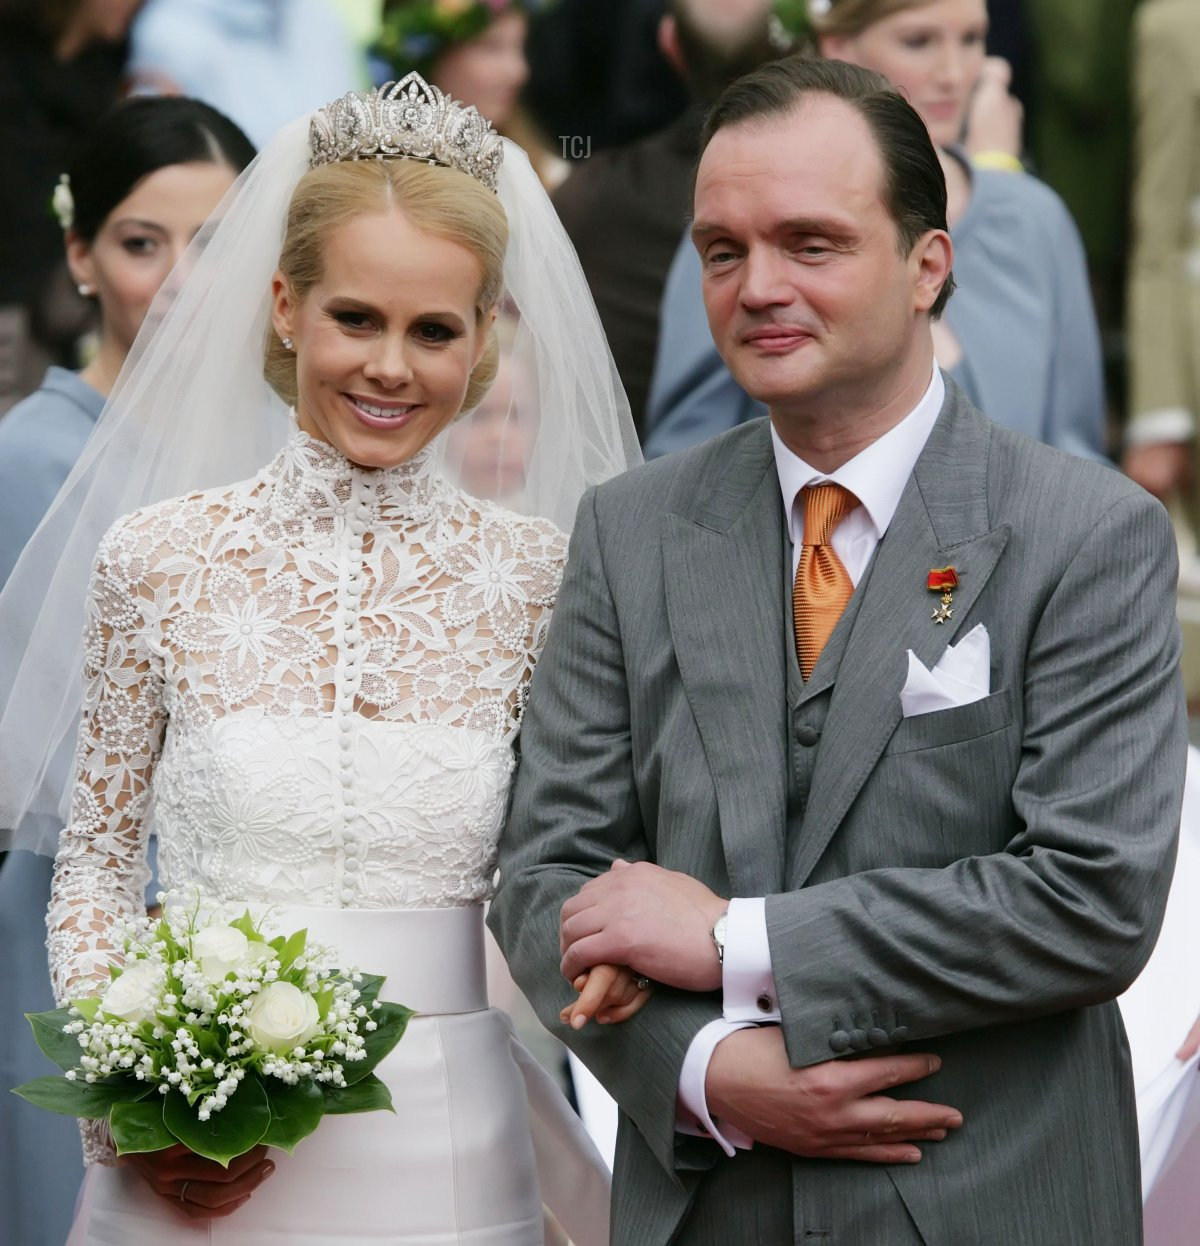 Prince Alexander zu Schaumburg Lippe (r) and his bride Nadja Anna Zsoeks leave the church after the wedding ceremony of Prince Alexander zu Schaumburg Lippe and Nadja Anna Zsoeks at the city church on June 30, 2007 in Bueckeburg, Germany